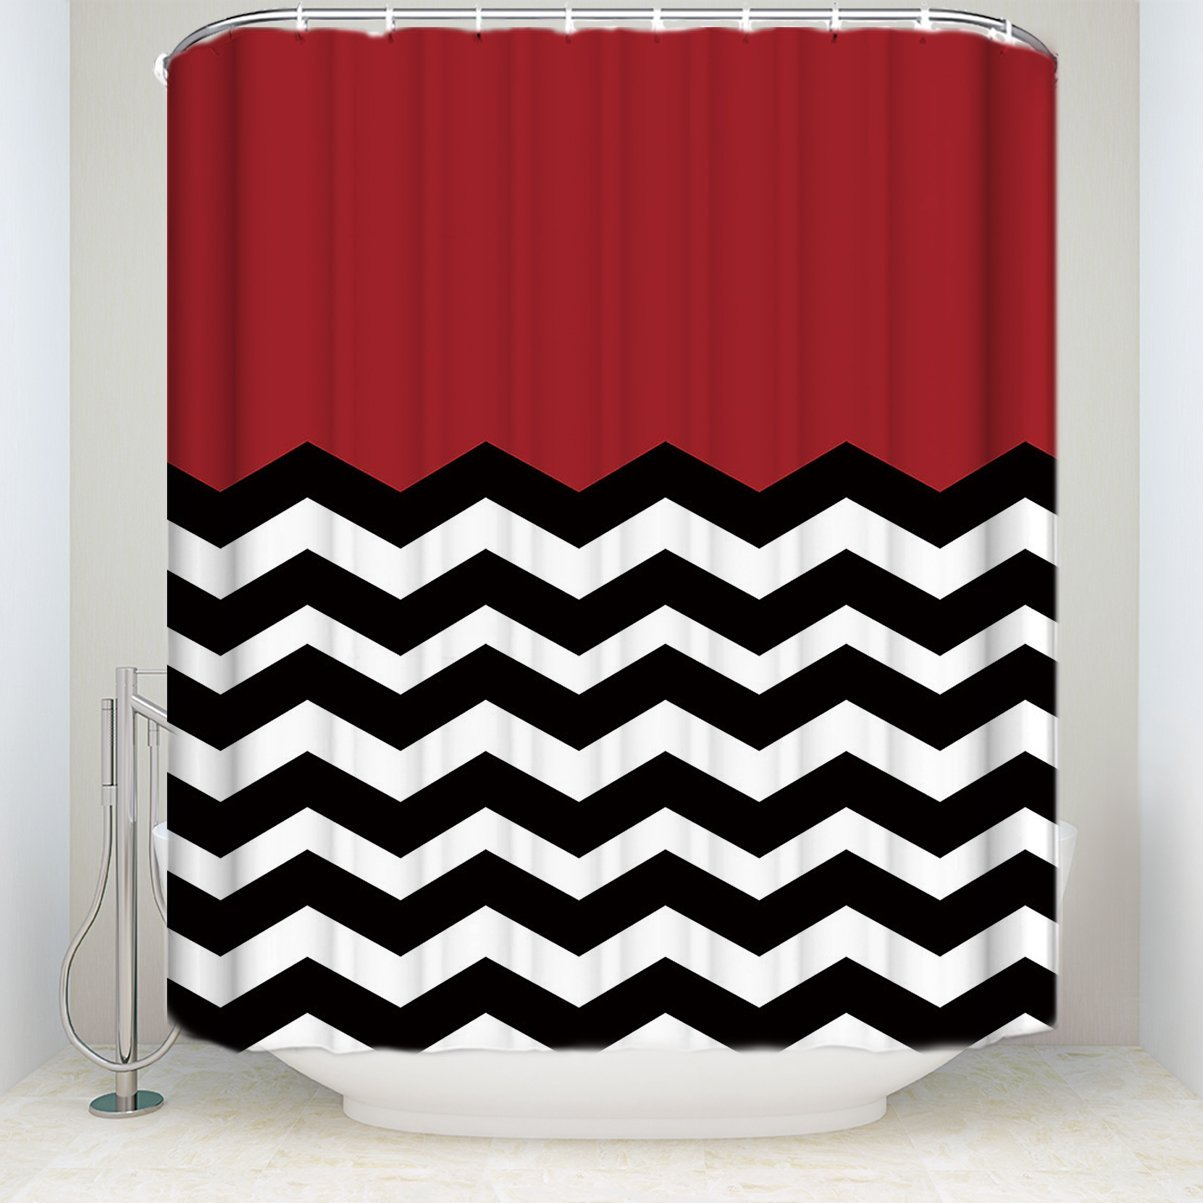 Black Stripe Curtains Us 16 81 37 Off Chevron Waterproof Polyester Fabric Shower Curtain Red White Black Striped Mold Resistant Shower Curtains In Shower Curtains From